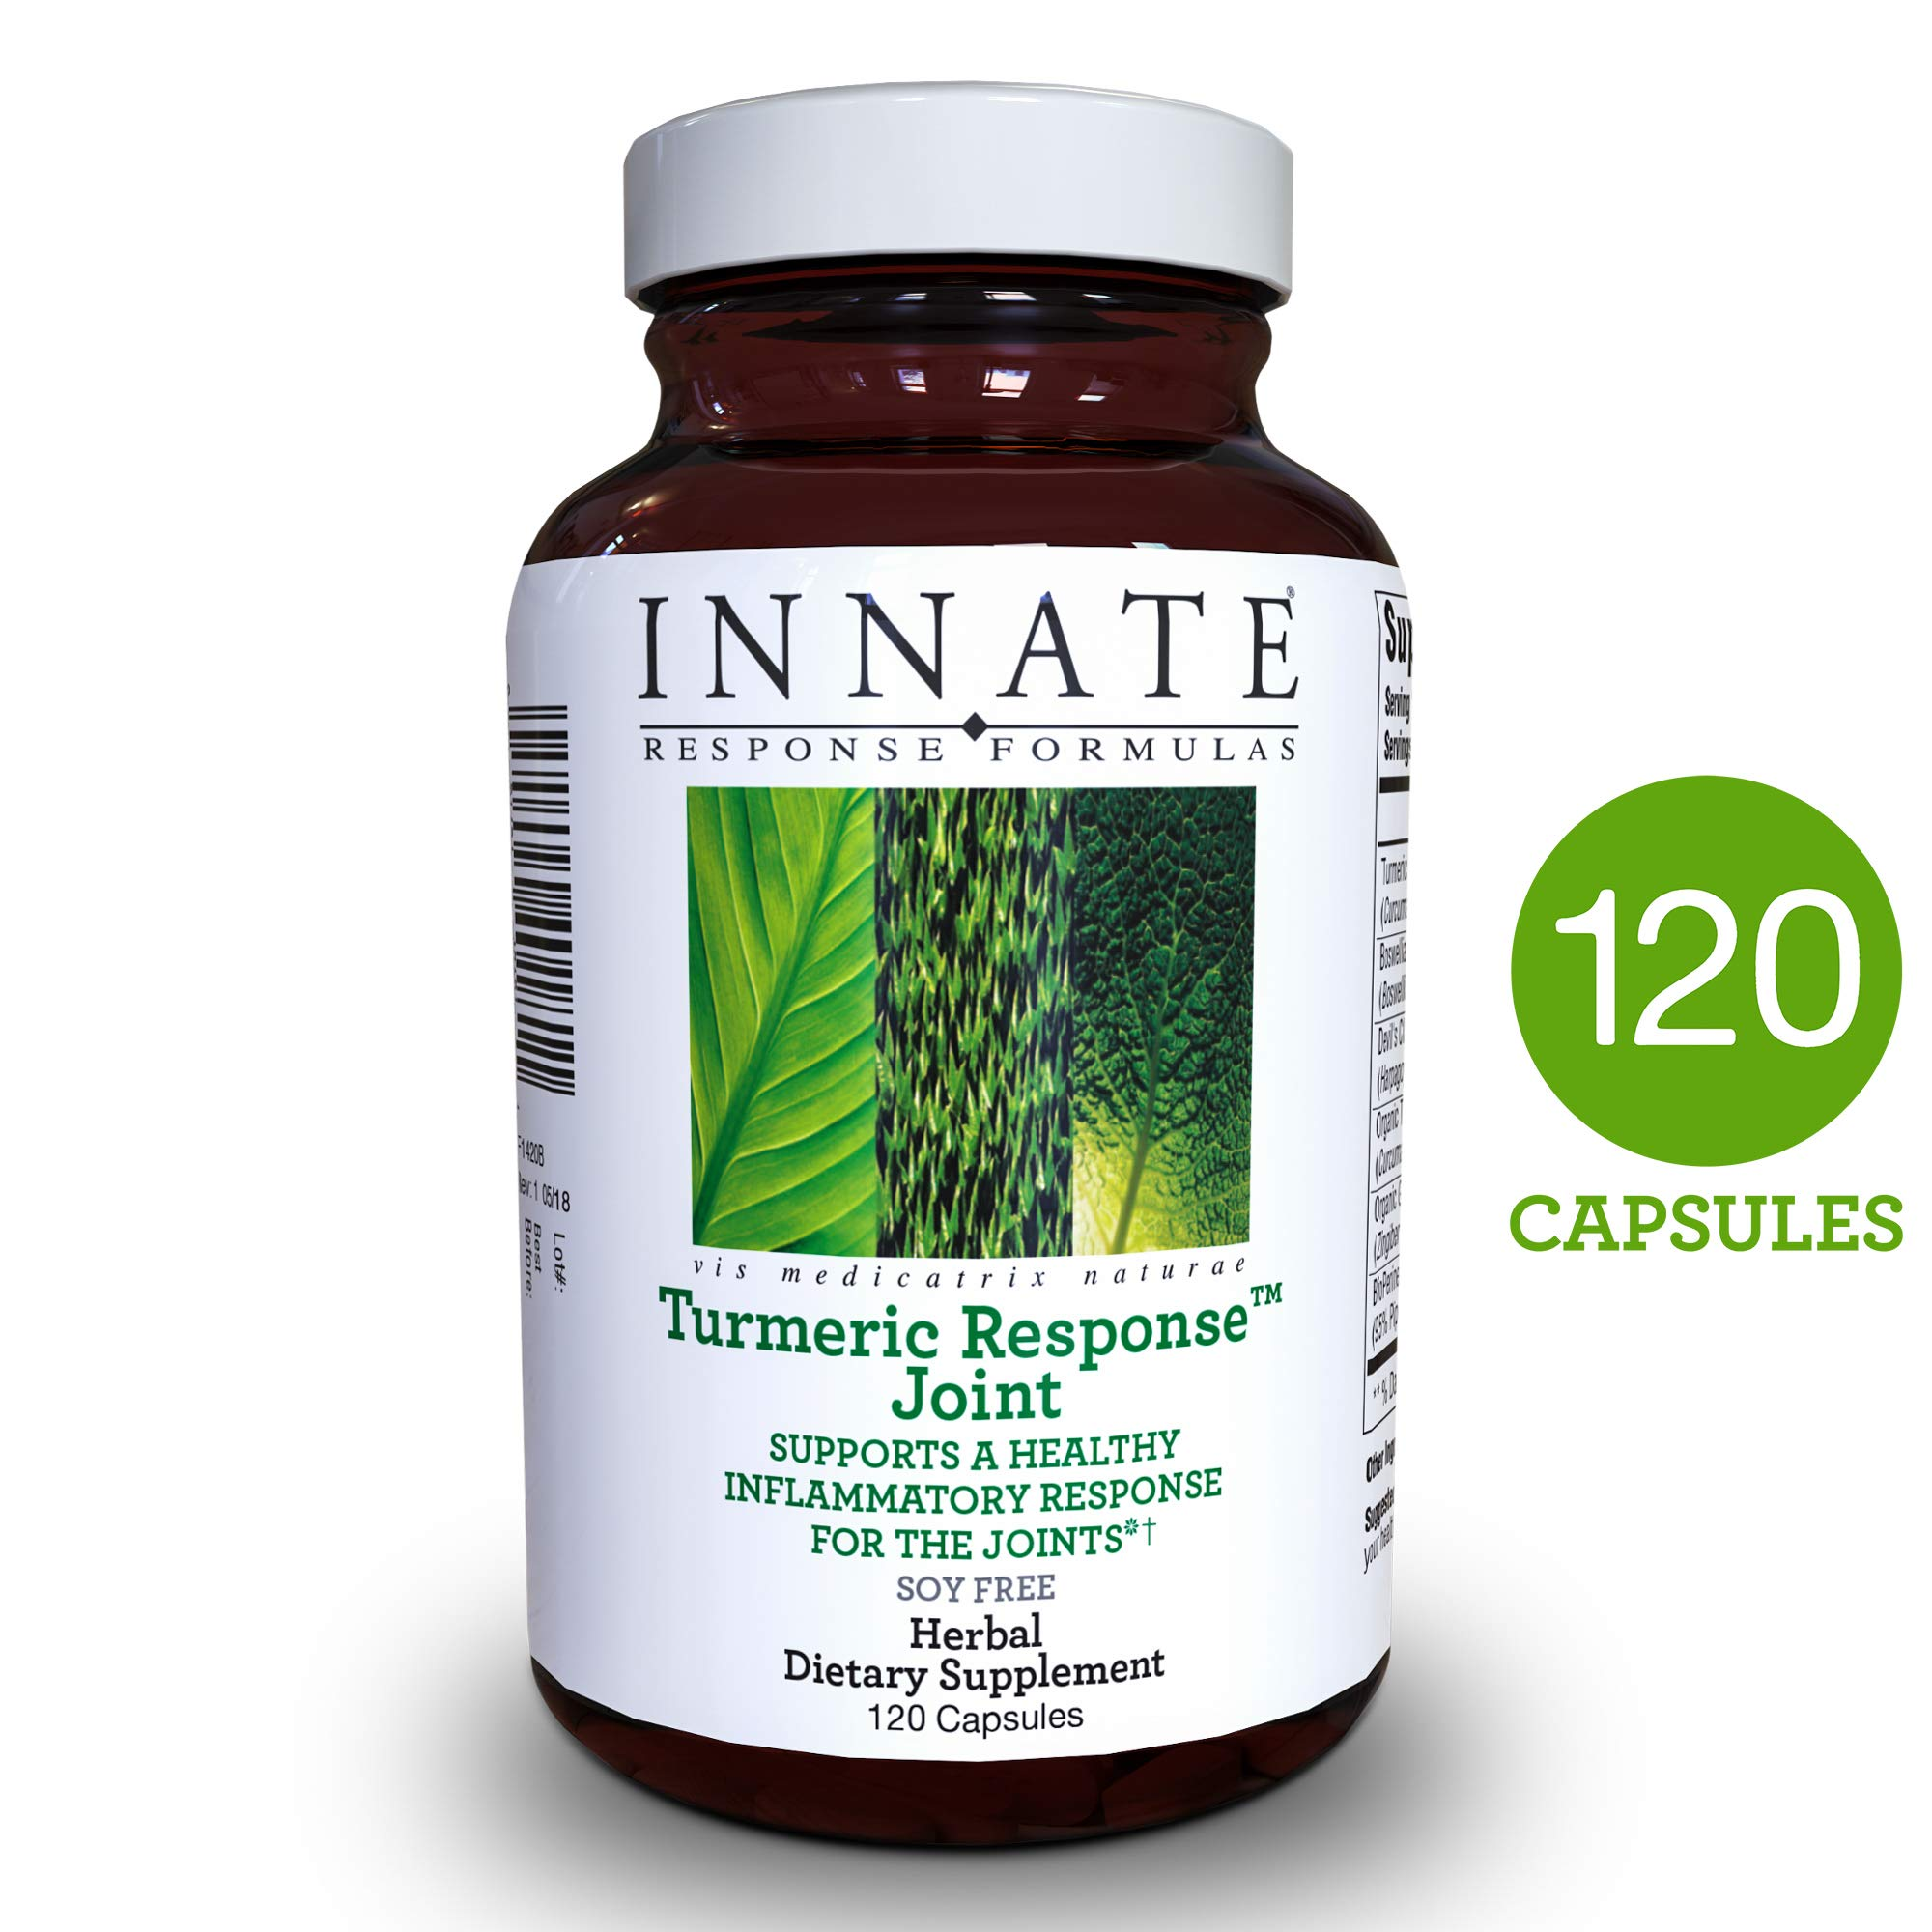 INNATE Response Formulas - Turmeric Response Joint, Support for Healthy Inflammatory Response in The Joints with BioPerine Black Pepper Fruit Extract and Devil's Claw, 120 Capsules